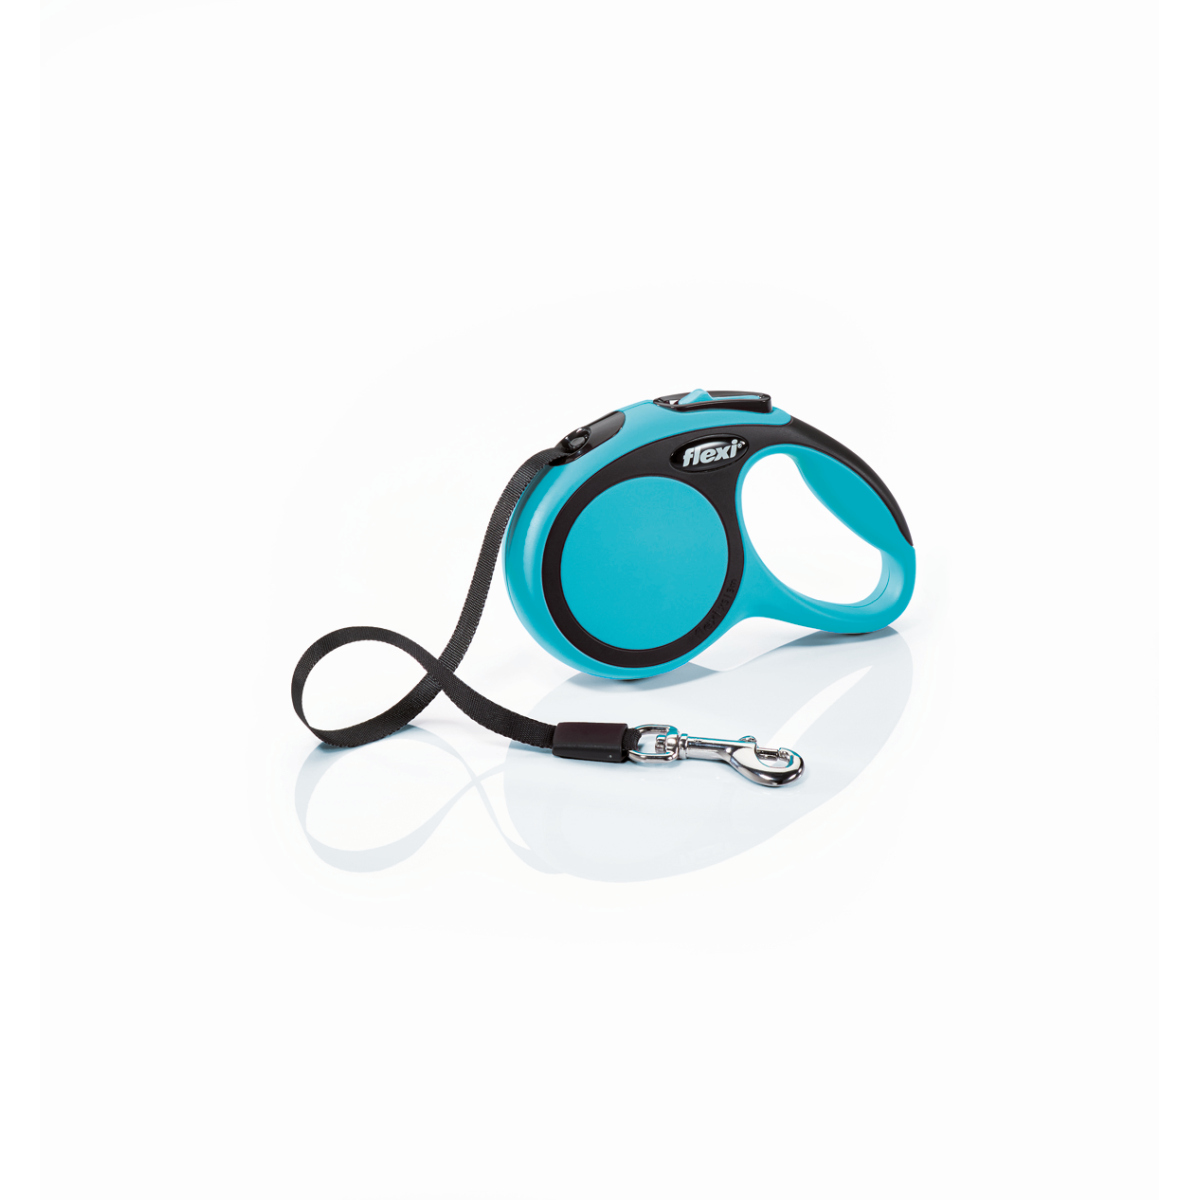 Flexi - new comfort tape xs - 3 m blauw